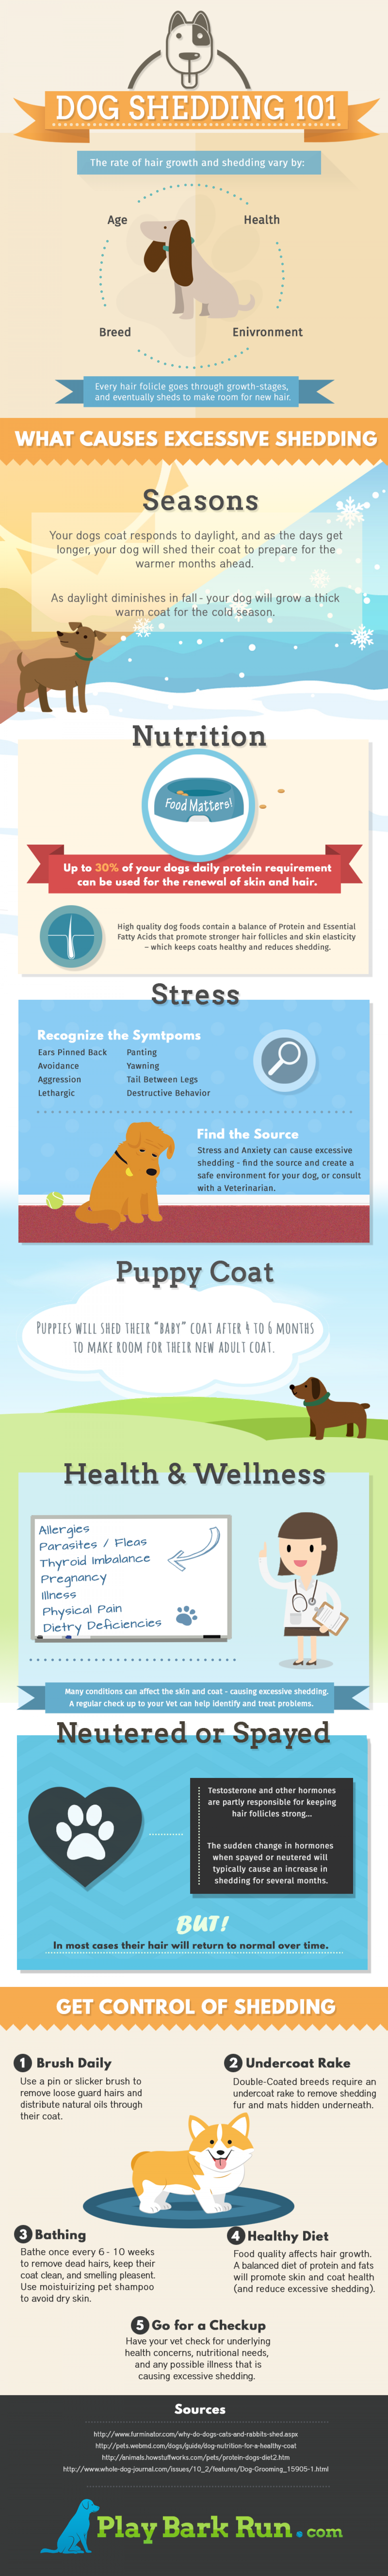 Dog Shedding 101: Quick Guide to Pet Hair Infographic